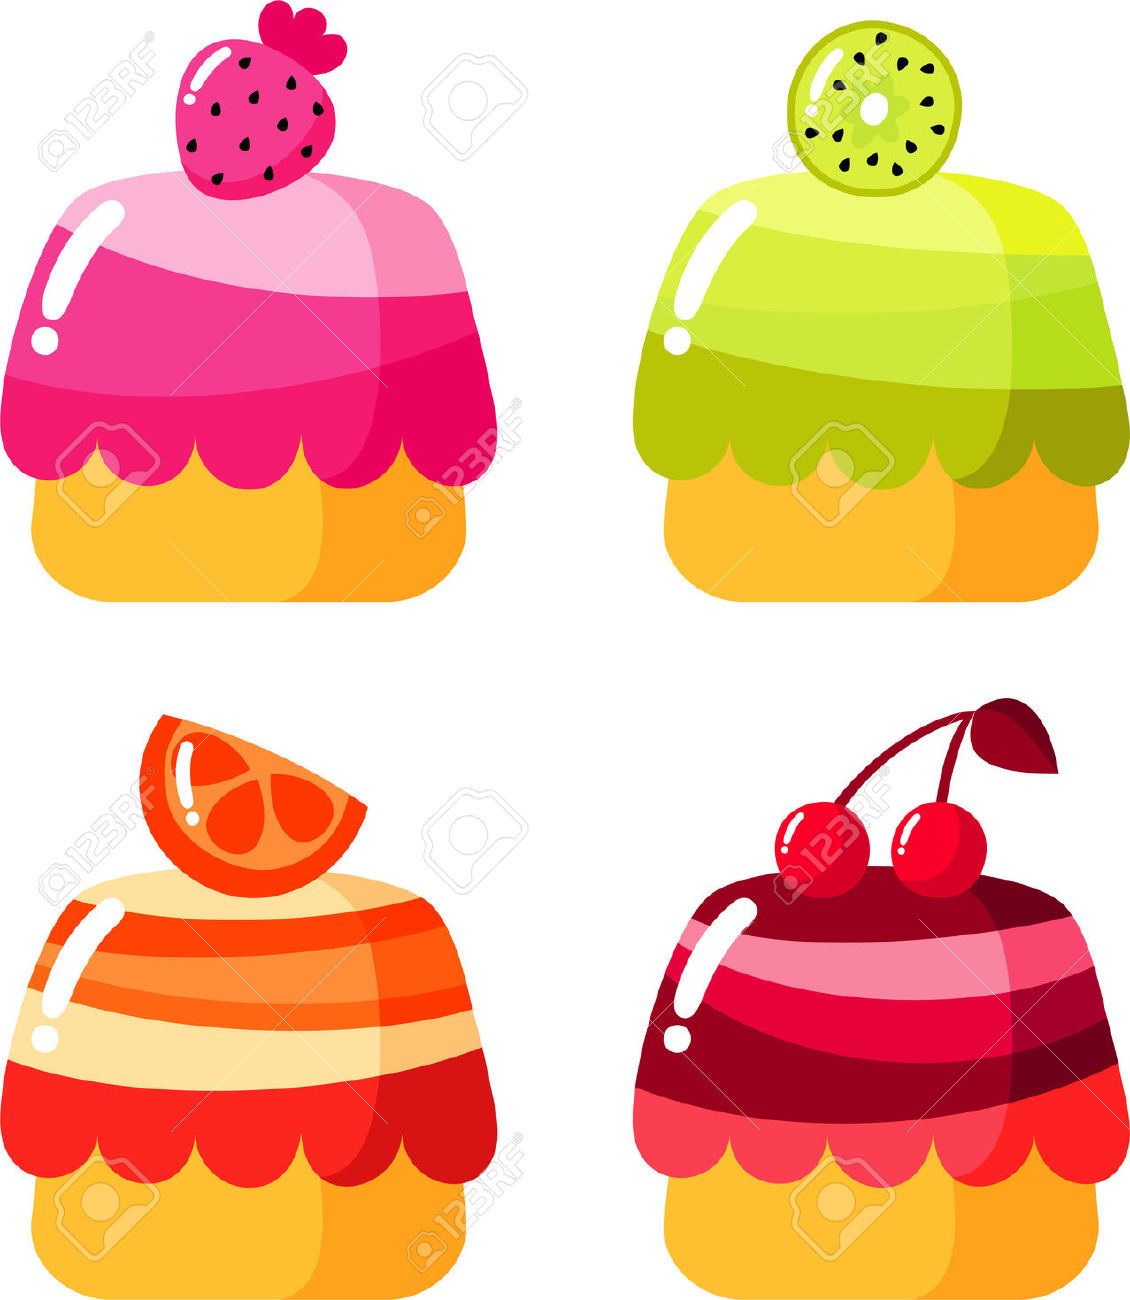 Cakes Royalty Free Cliparts, Vectors, And Stock Illustration.